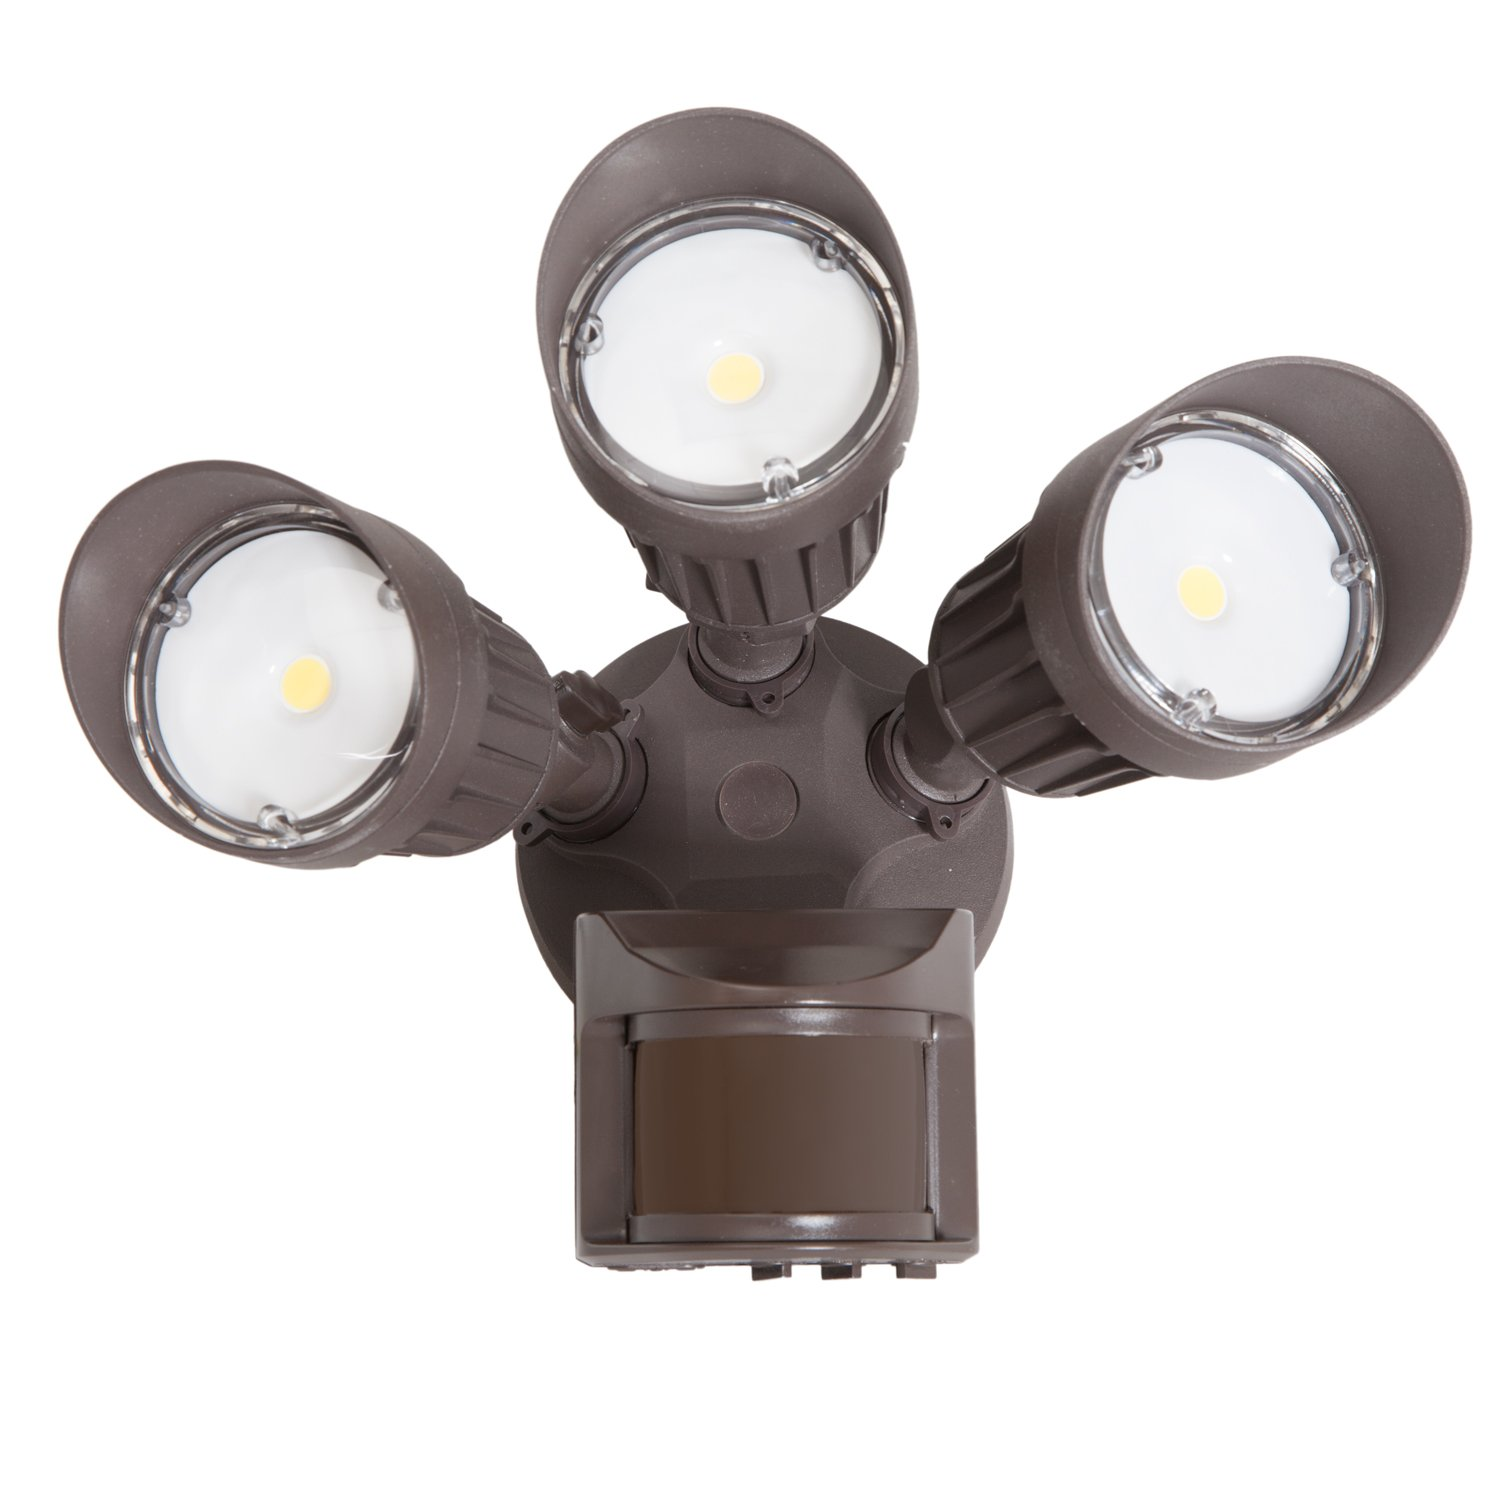 Maxxima 3 Head Outdoor LED Security Light, 30W, 2700 Lumens, Motion Sensor, Photocell Sensor, Brown, 5000K